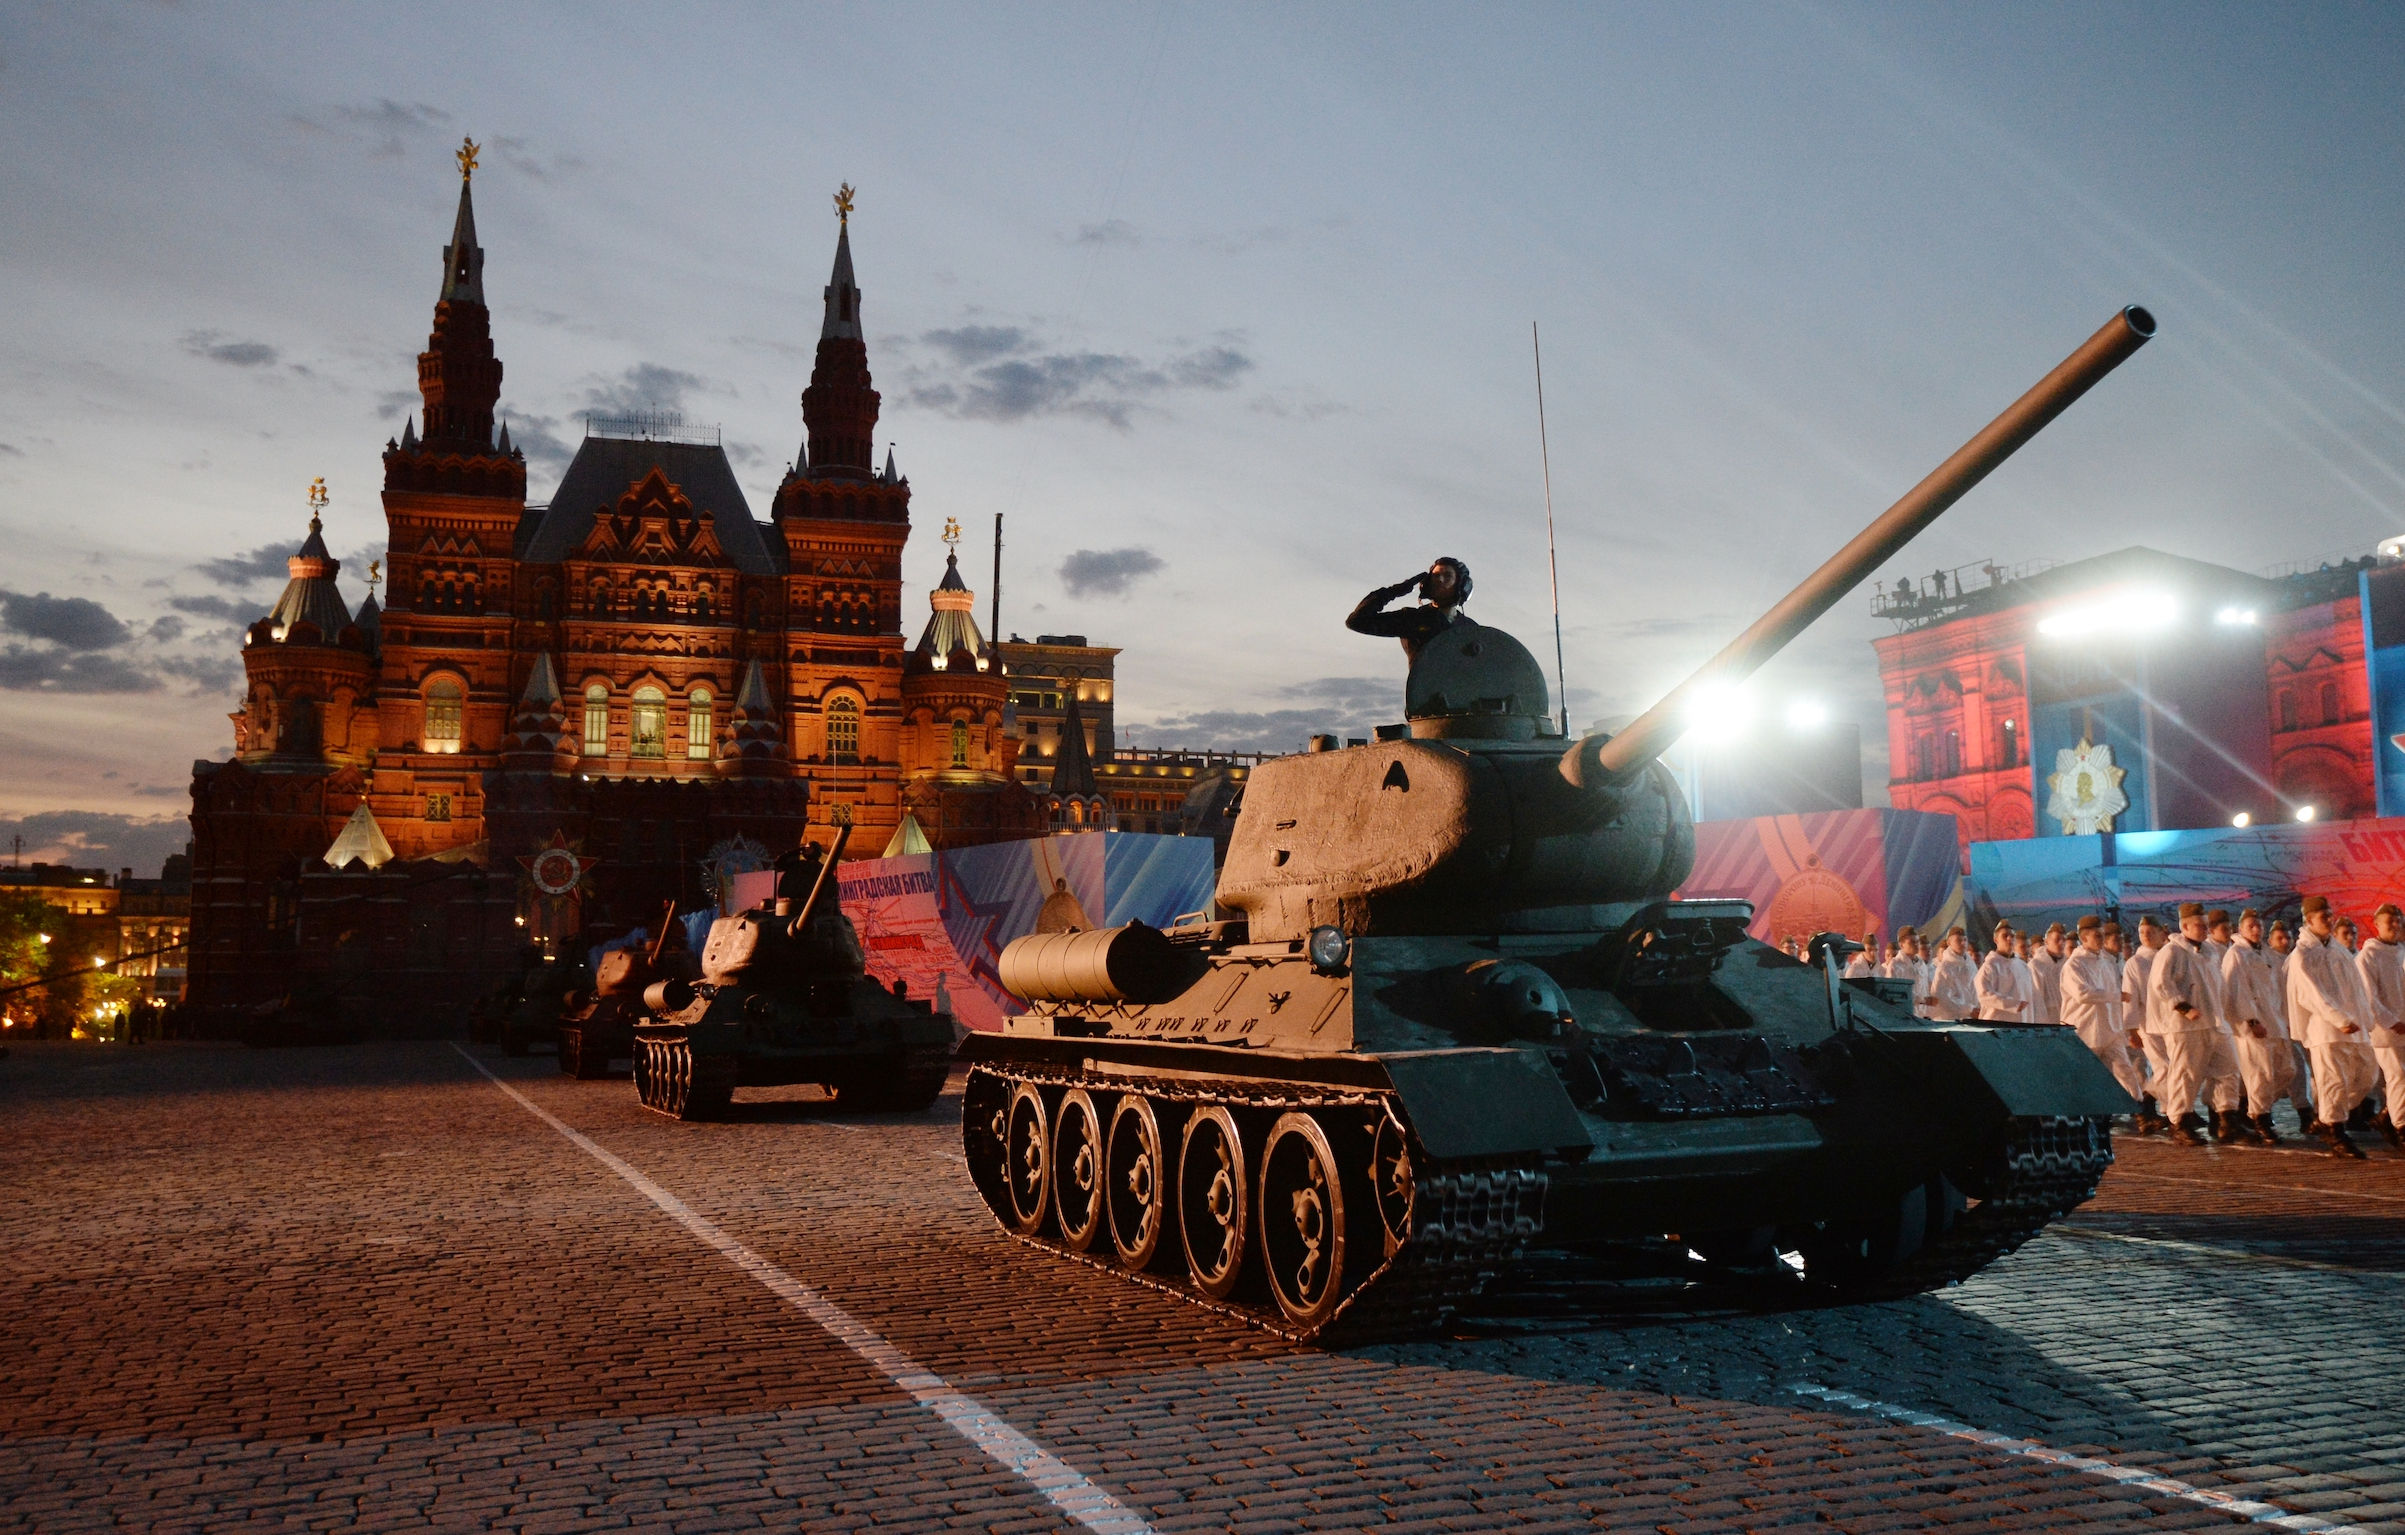 A gala concert was held in Red Square to mark the 70th anniversary victory, May 9, 2015 in Moscow.